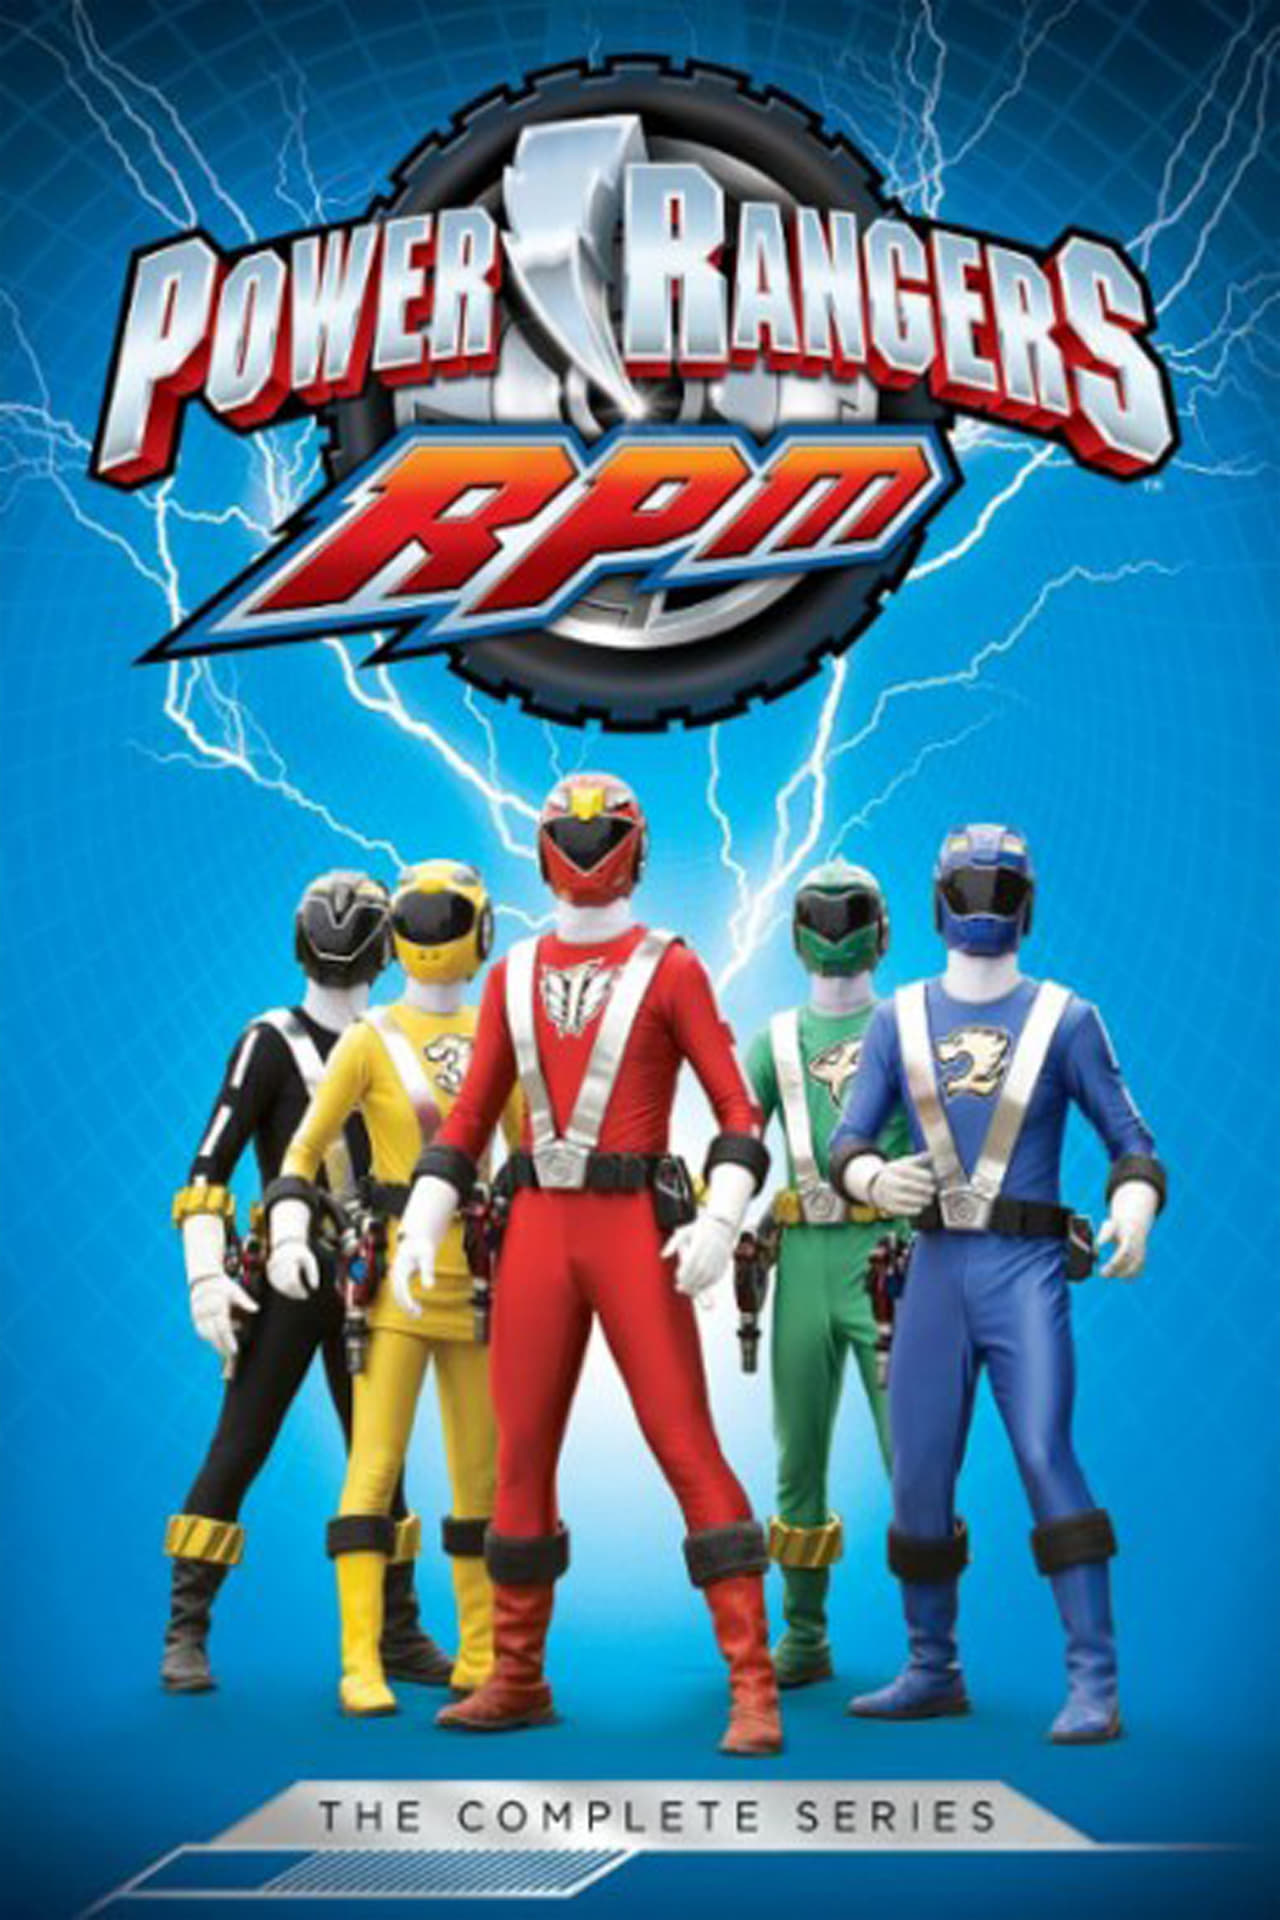 Power Rangers Season 17 (2009) putlockers cafe